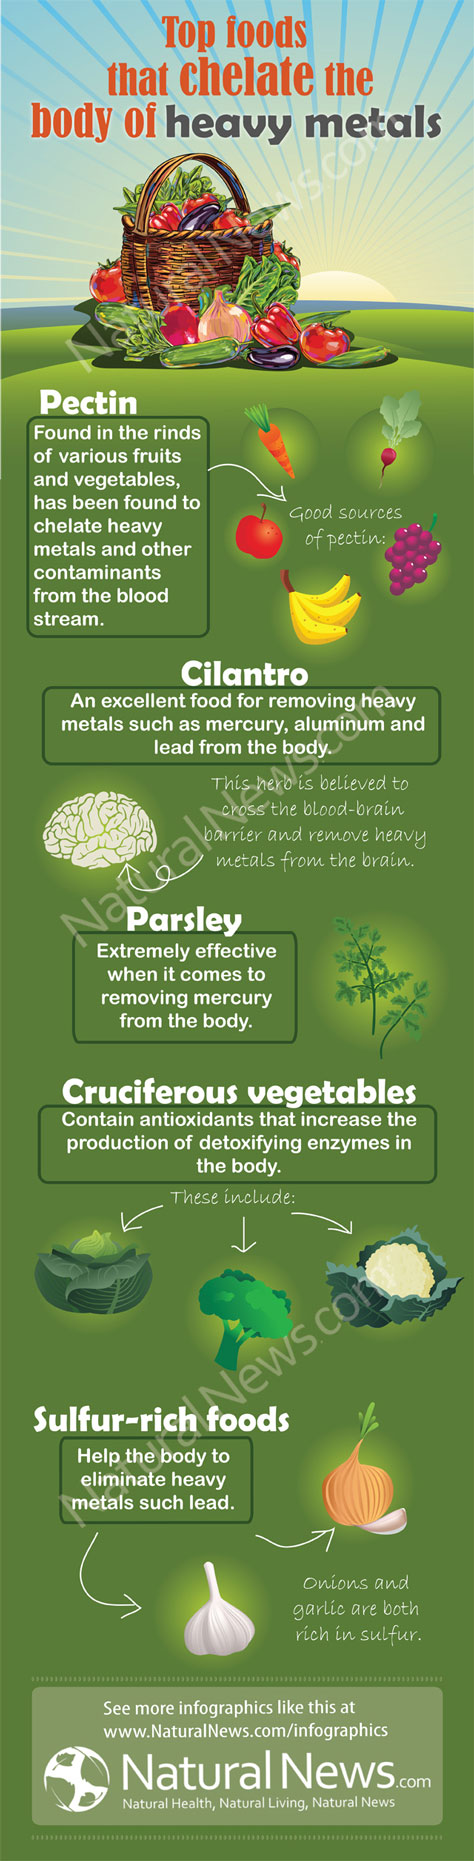 Infographic-Top-Foods-to-Chelate-Metal_small